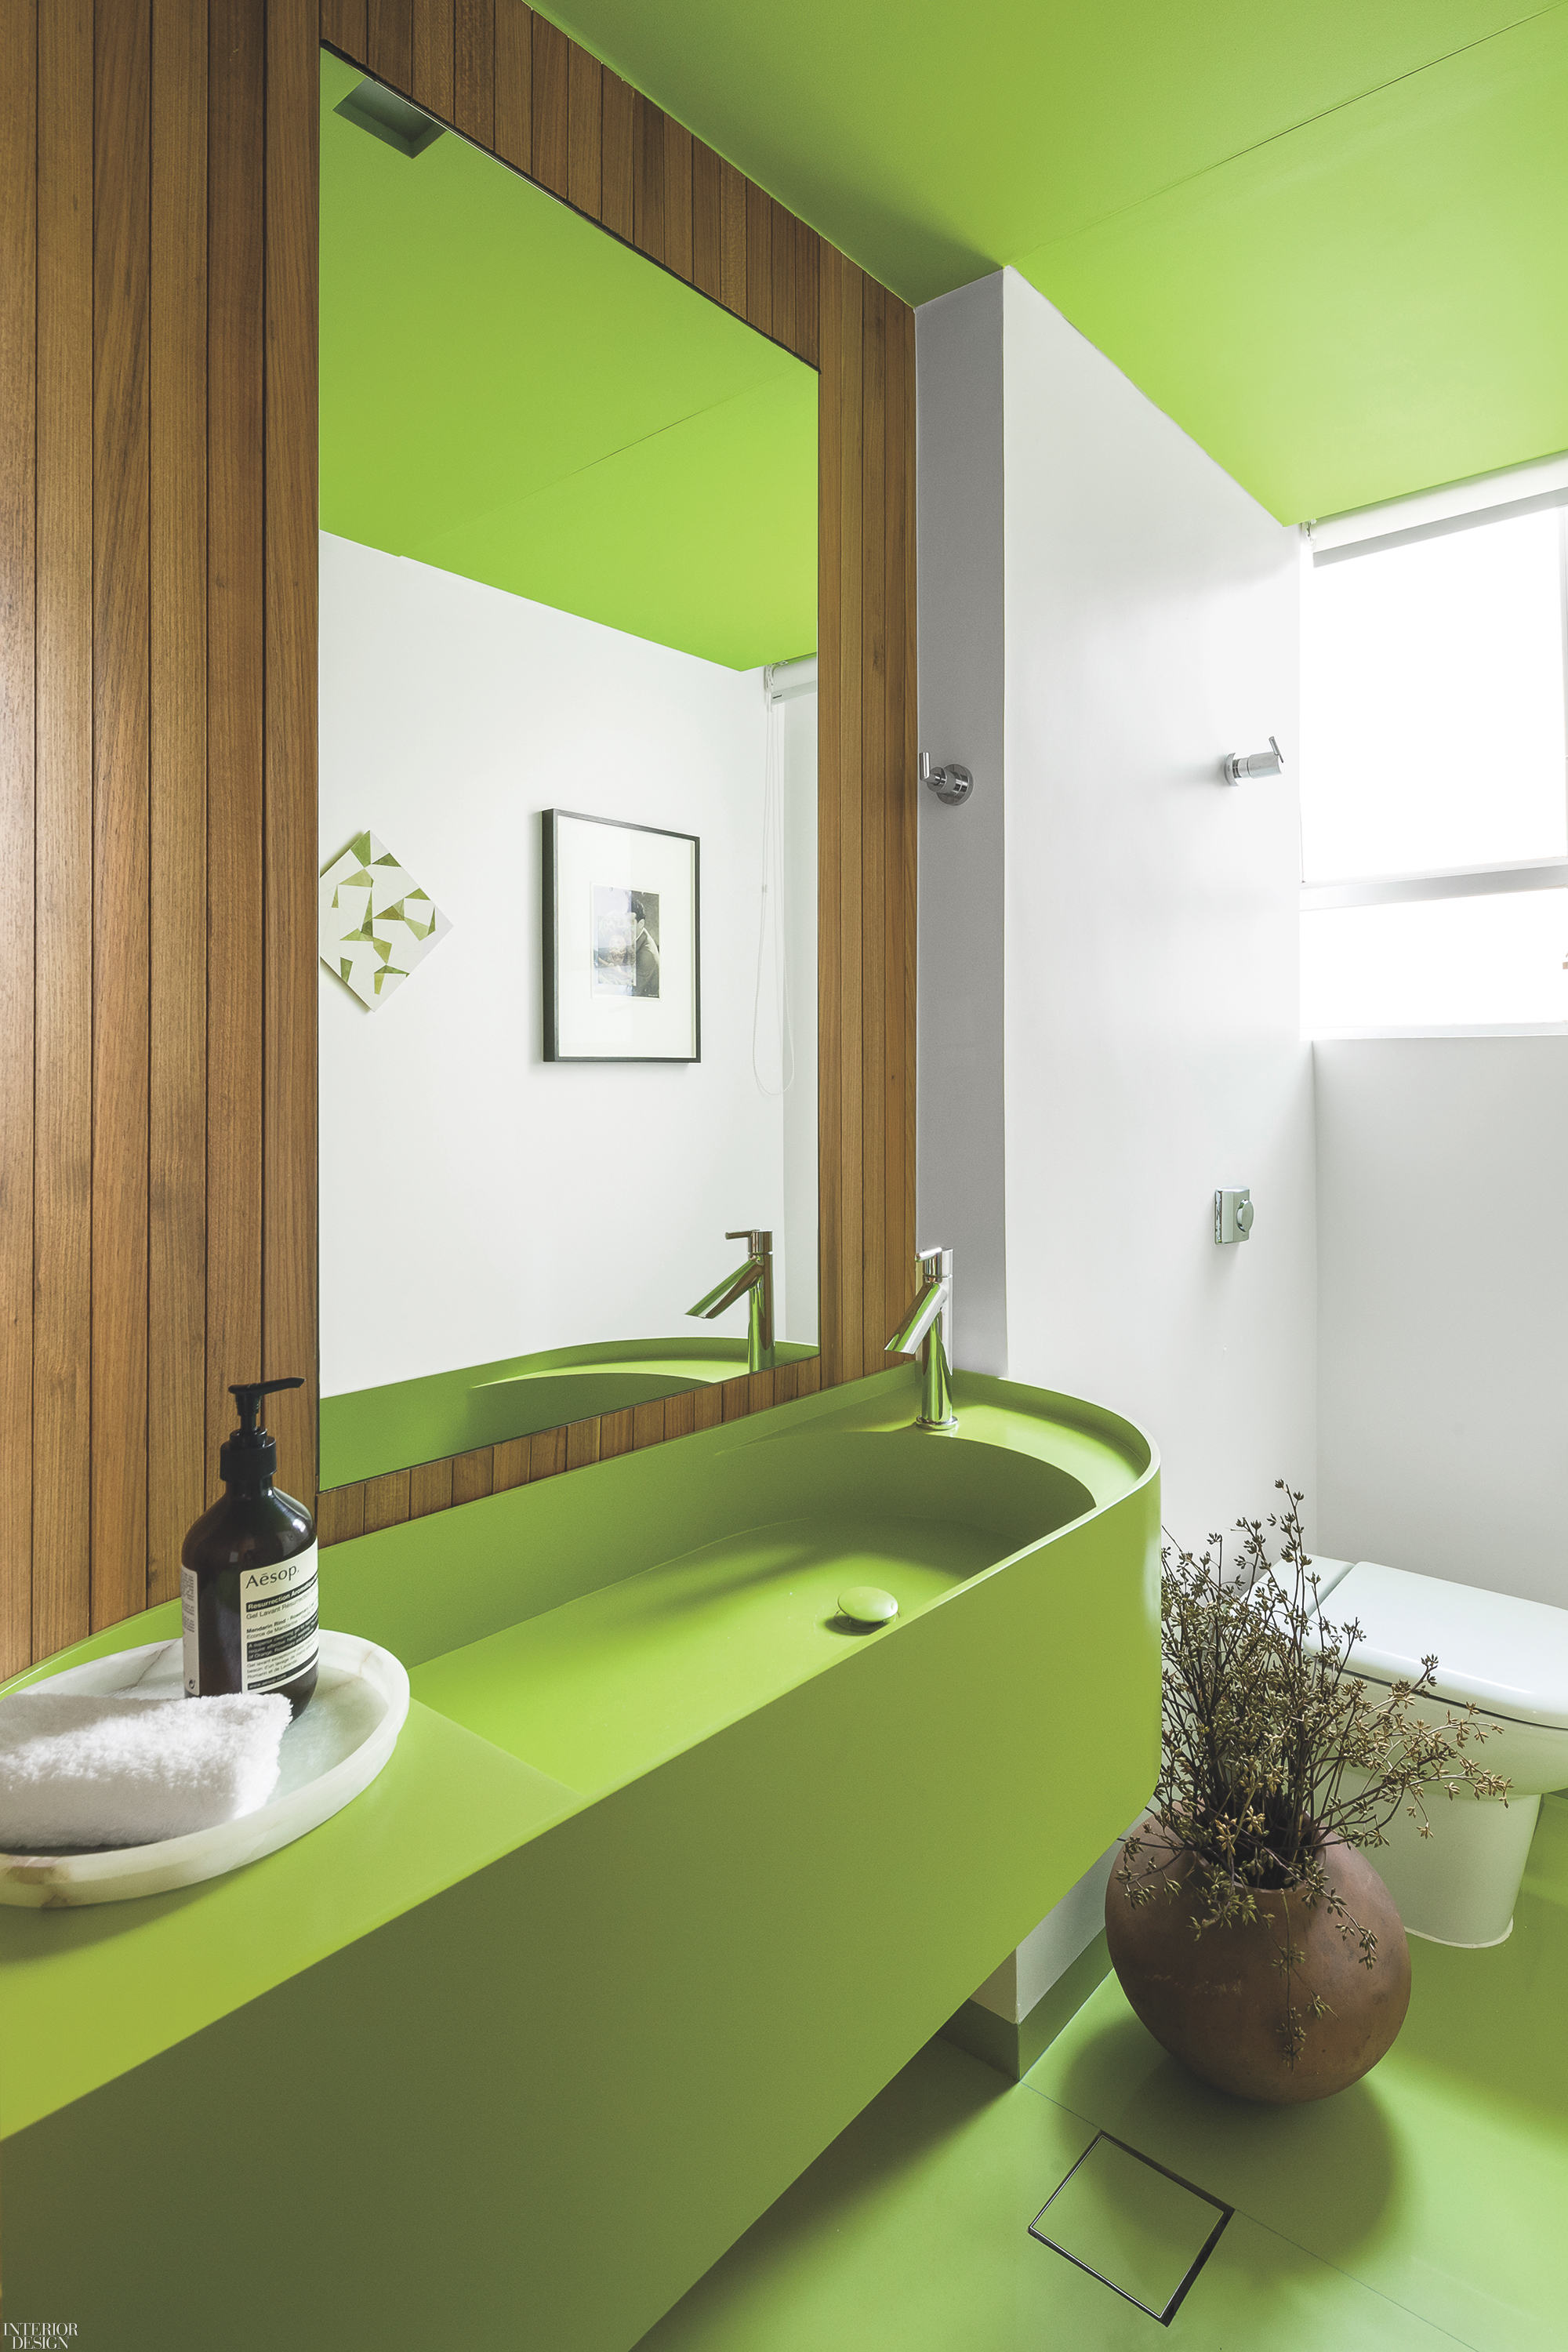 Green Interior Ideas For Your Home: Seeing Green: 25 Interiors To Inspire You On St. Patrick's Day